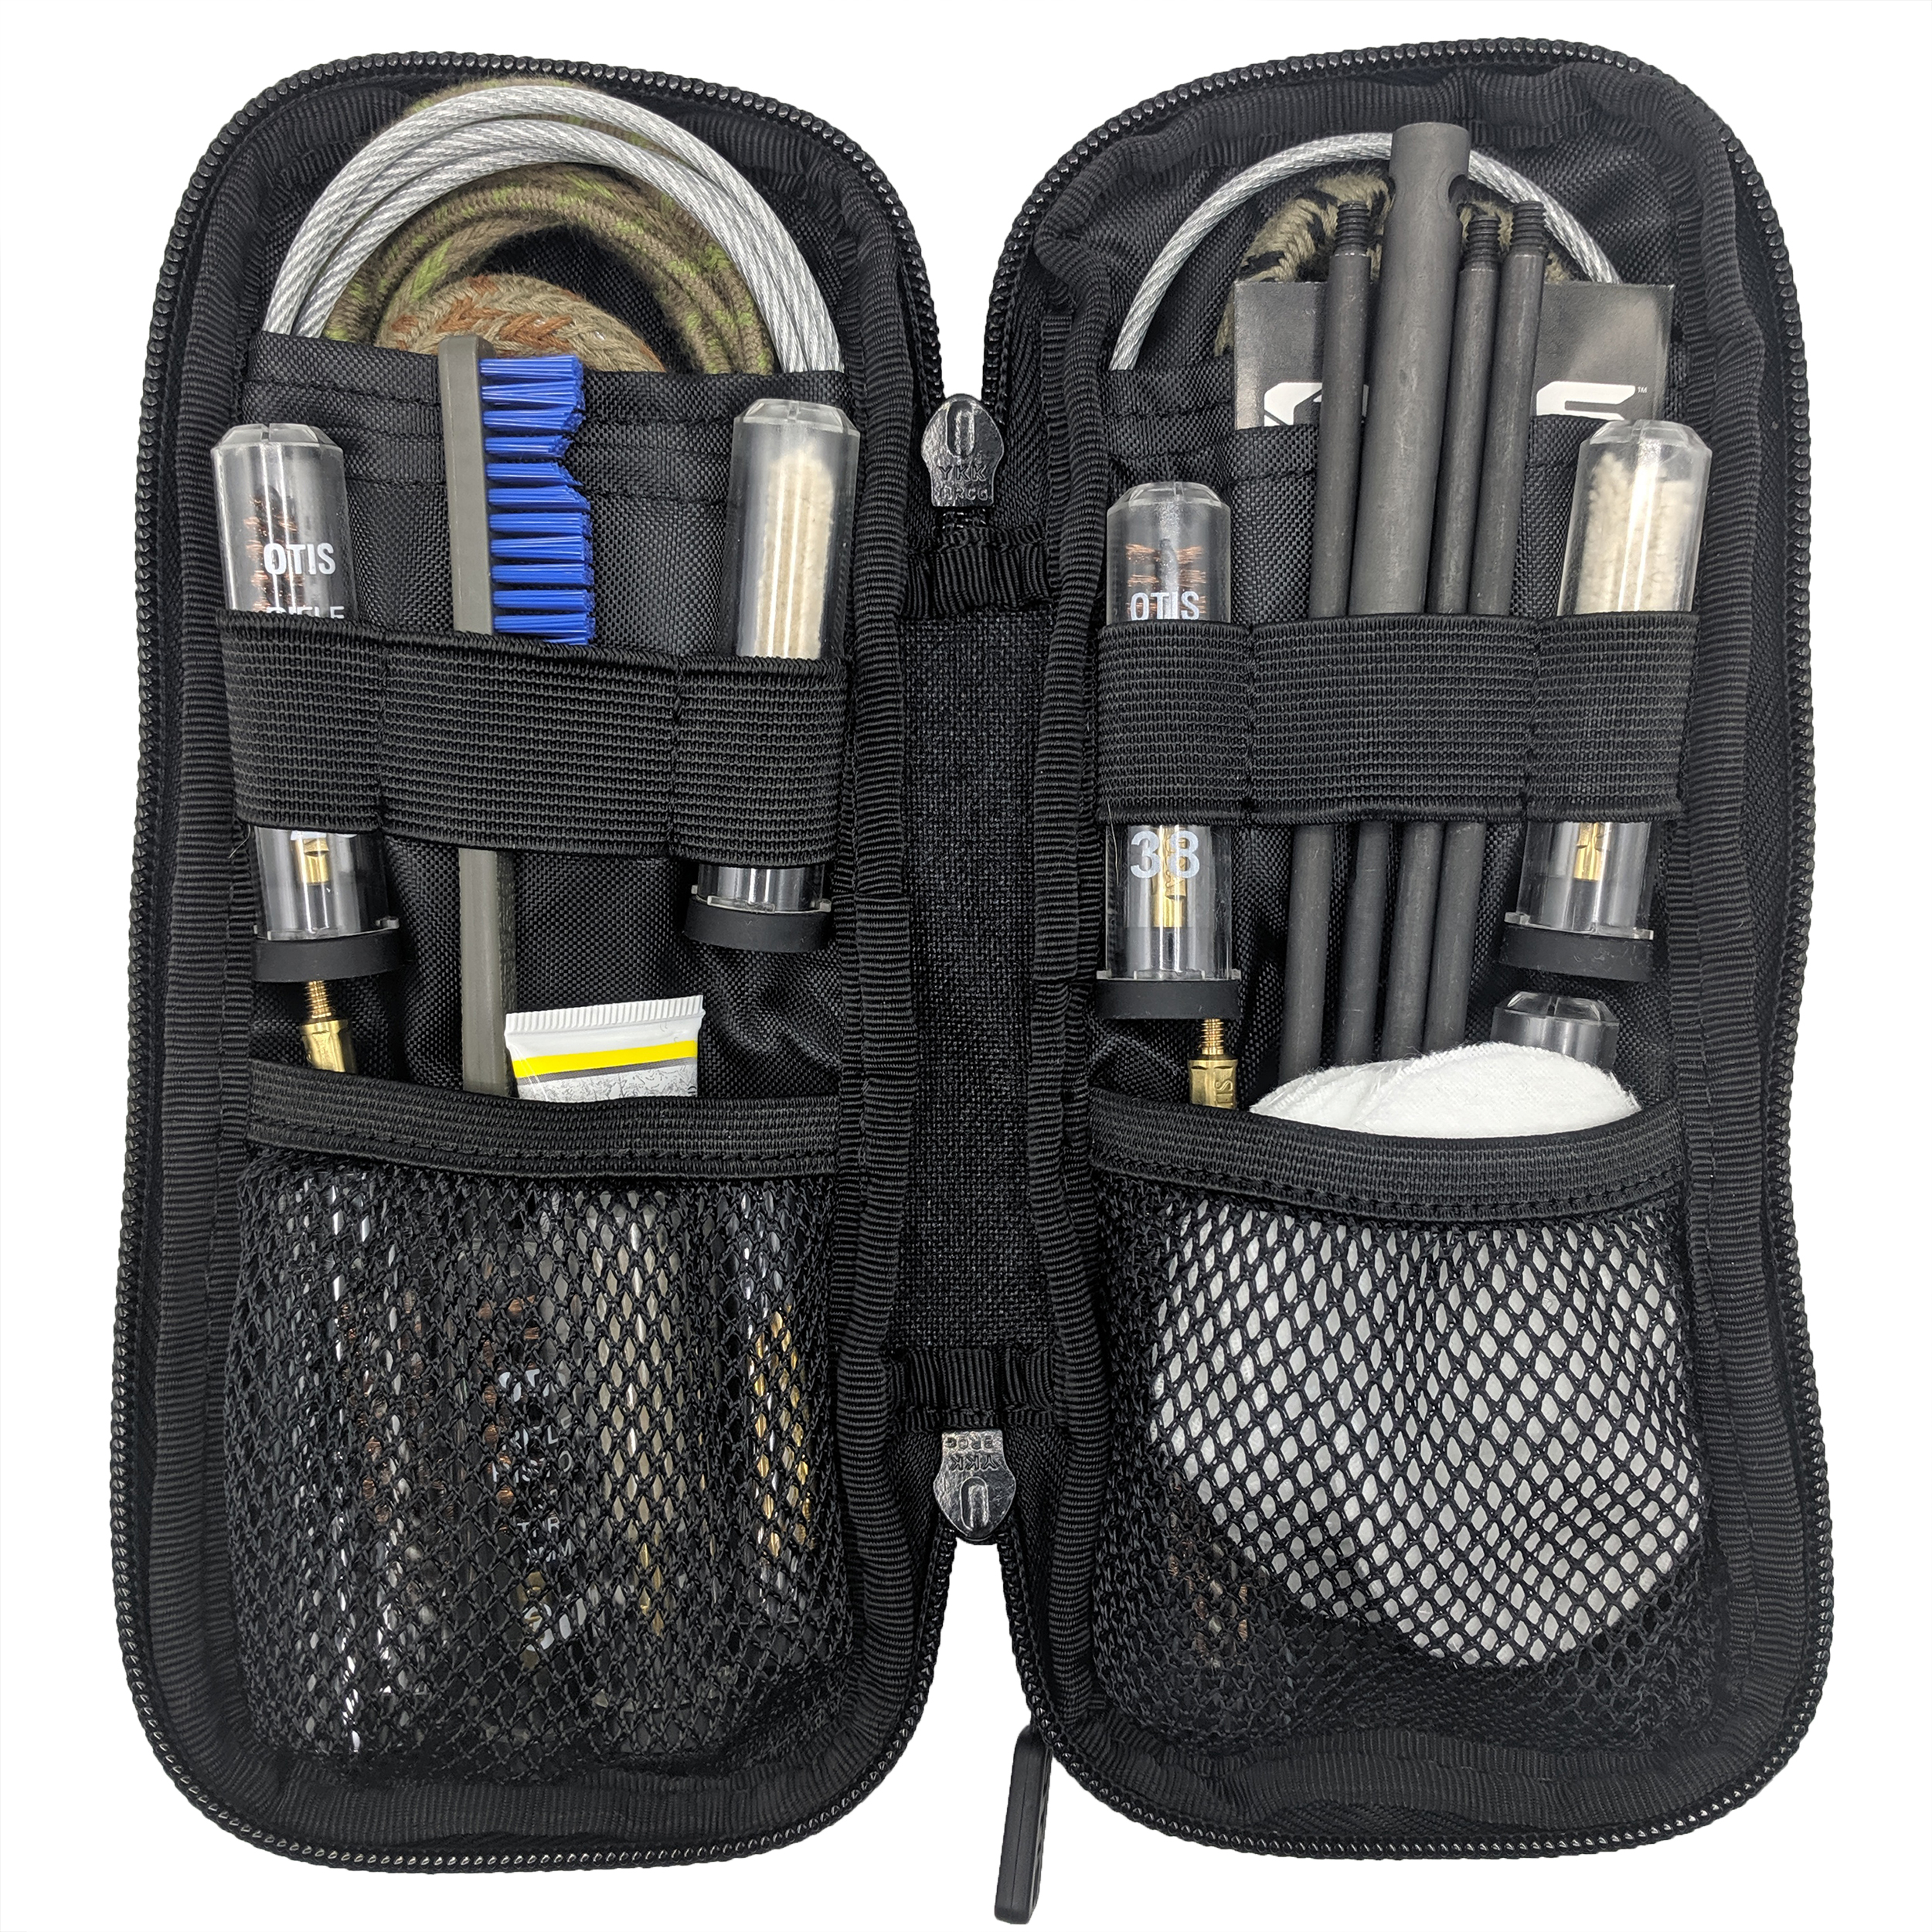 5.56mm/7.62mm/9mm Defender™ Series Cleaning Kit